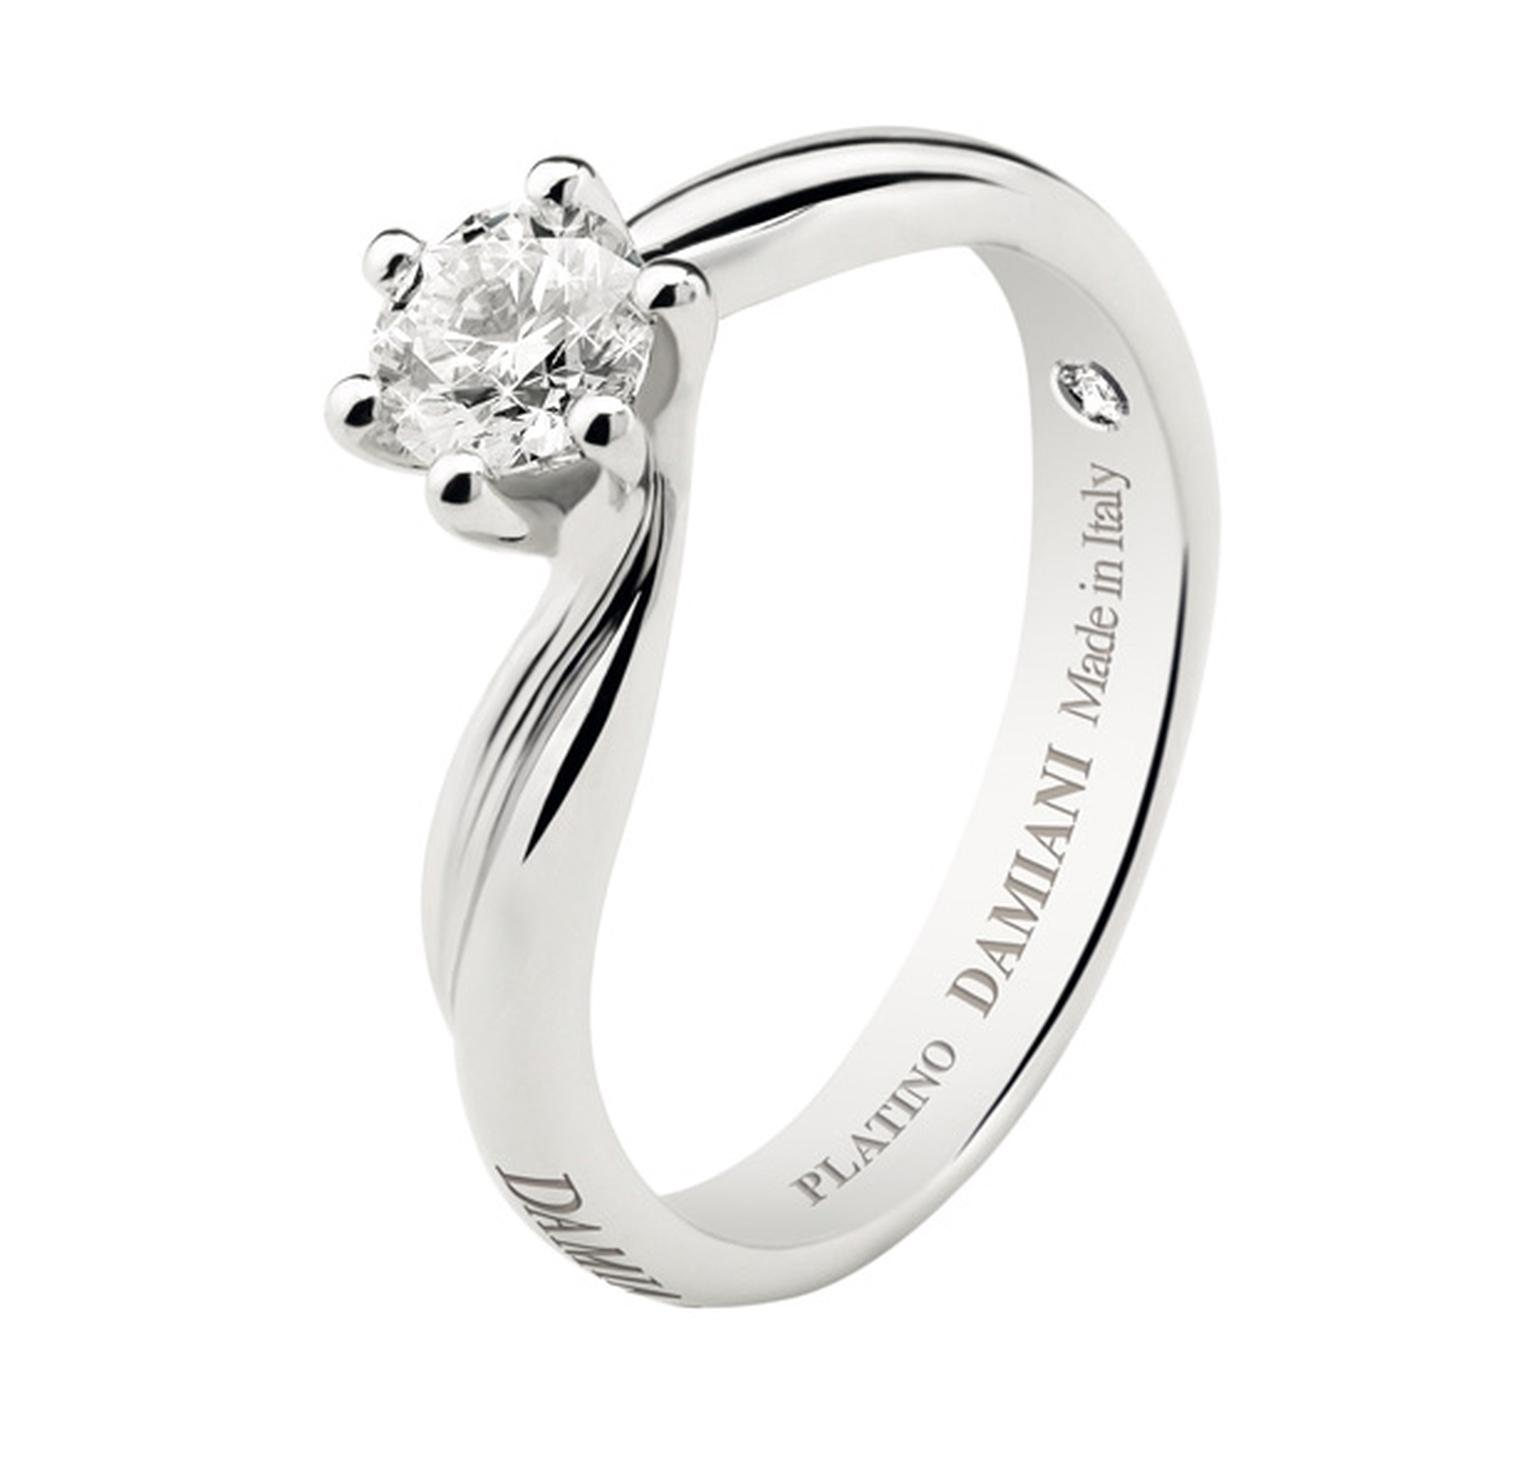 Damiani Sinfonia diamond solitaire in platinum